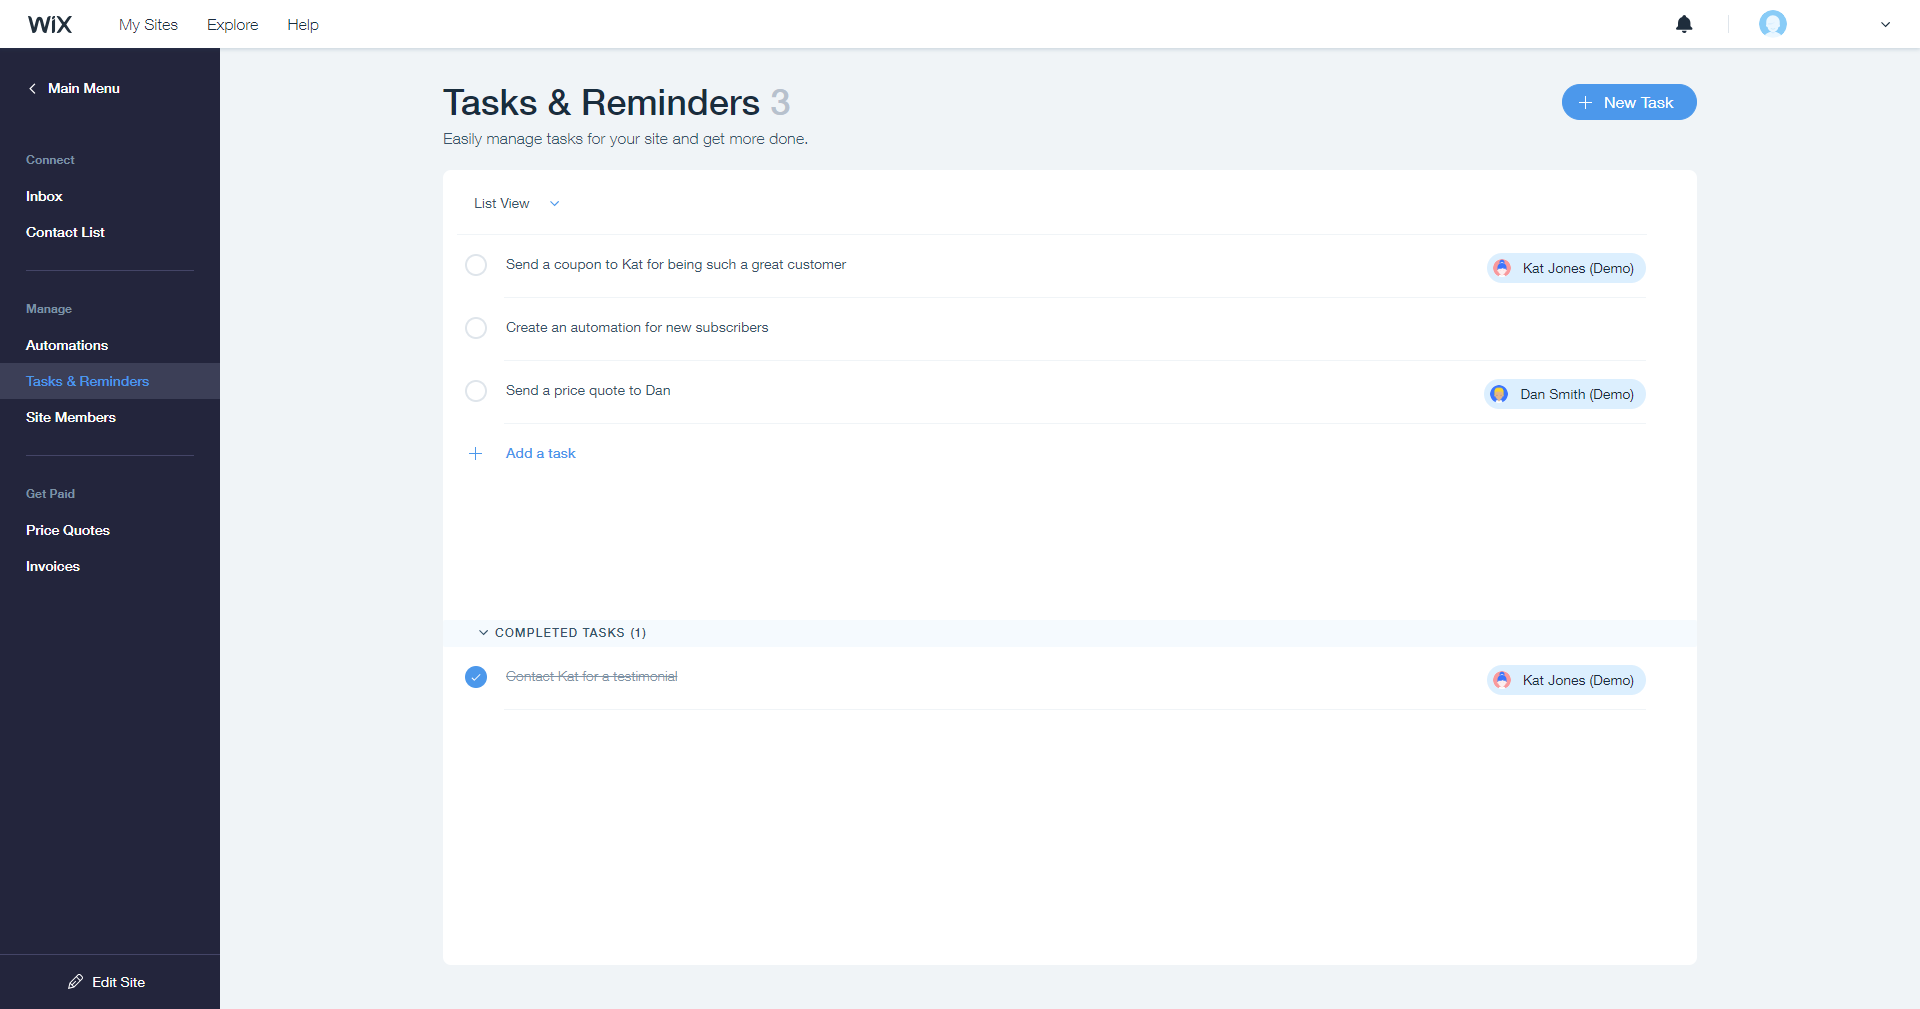 Wix Ascend tasks reminders